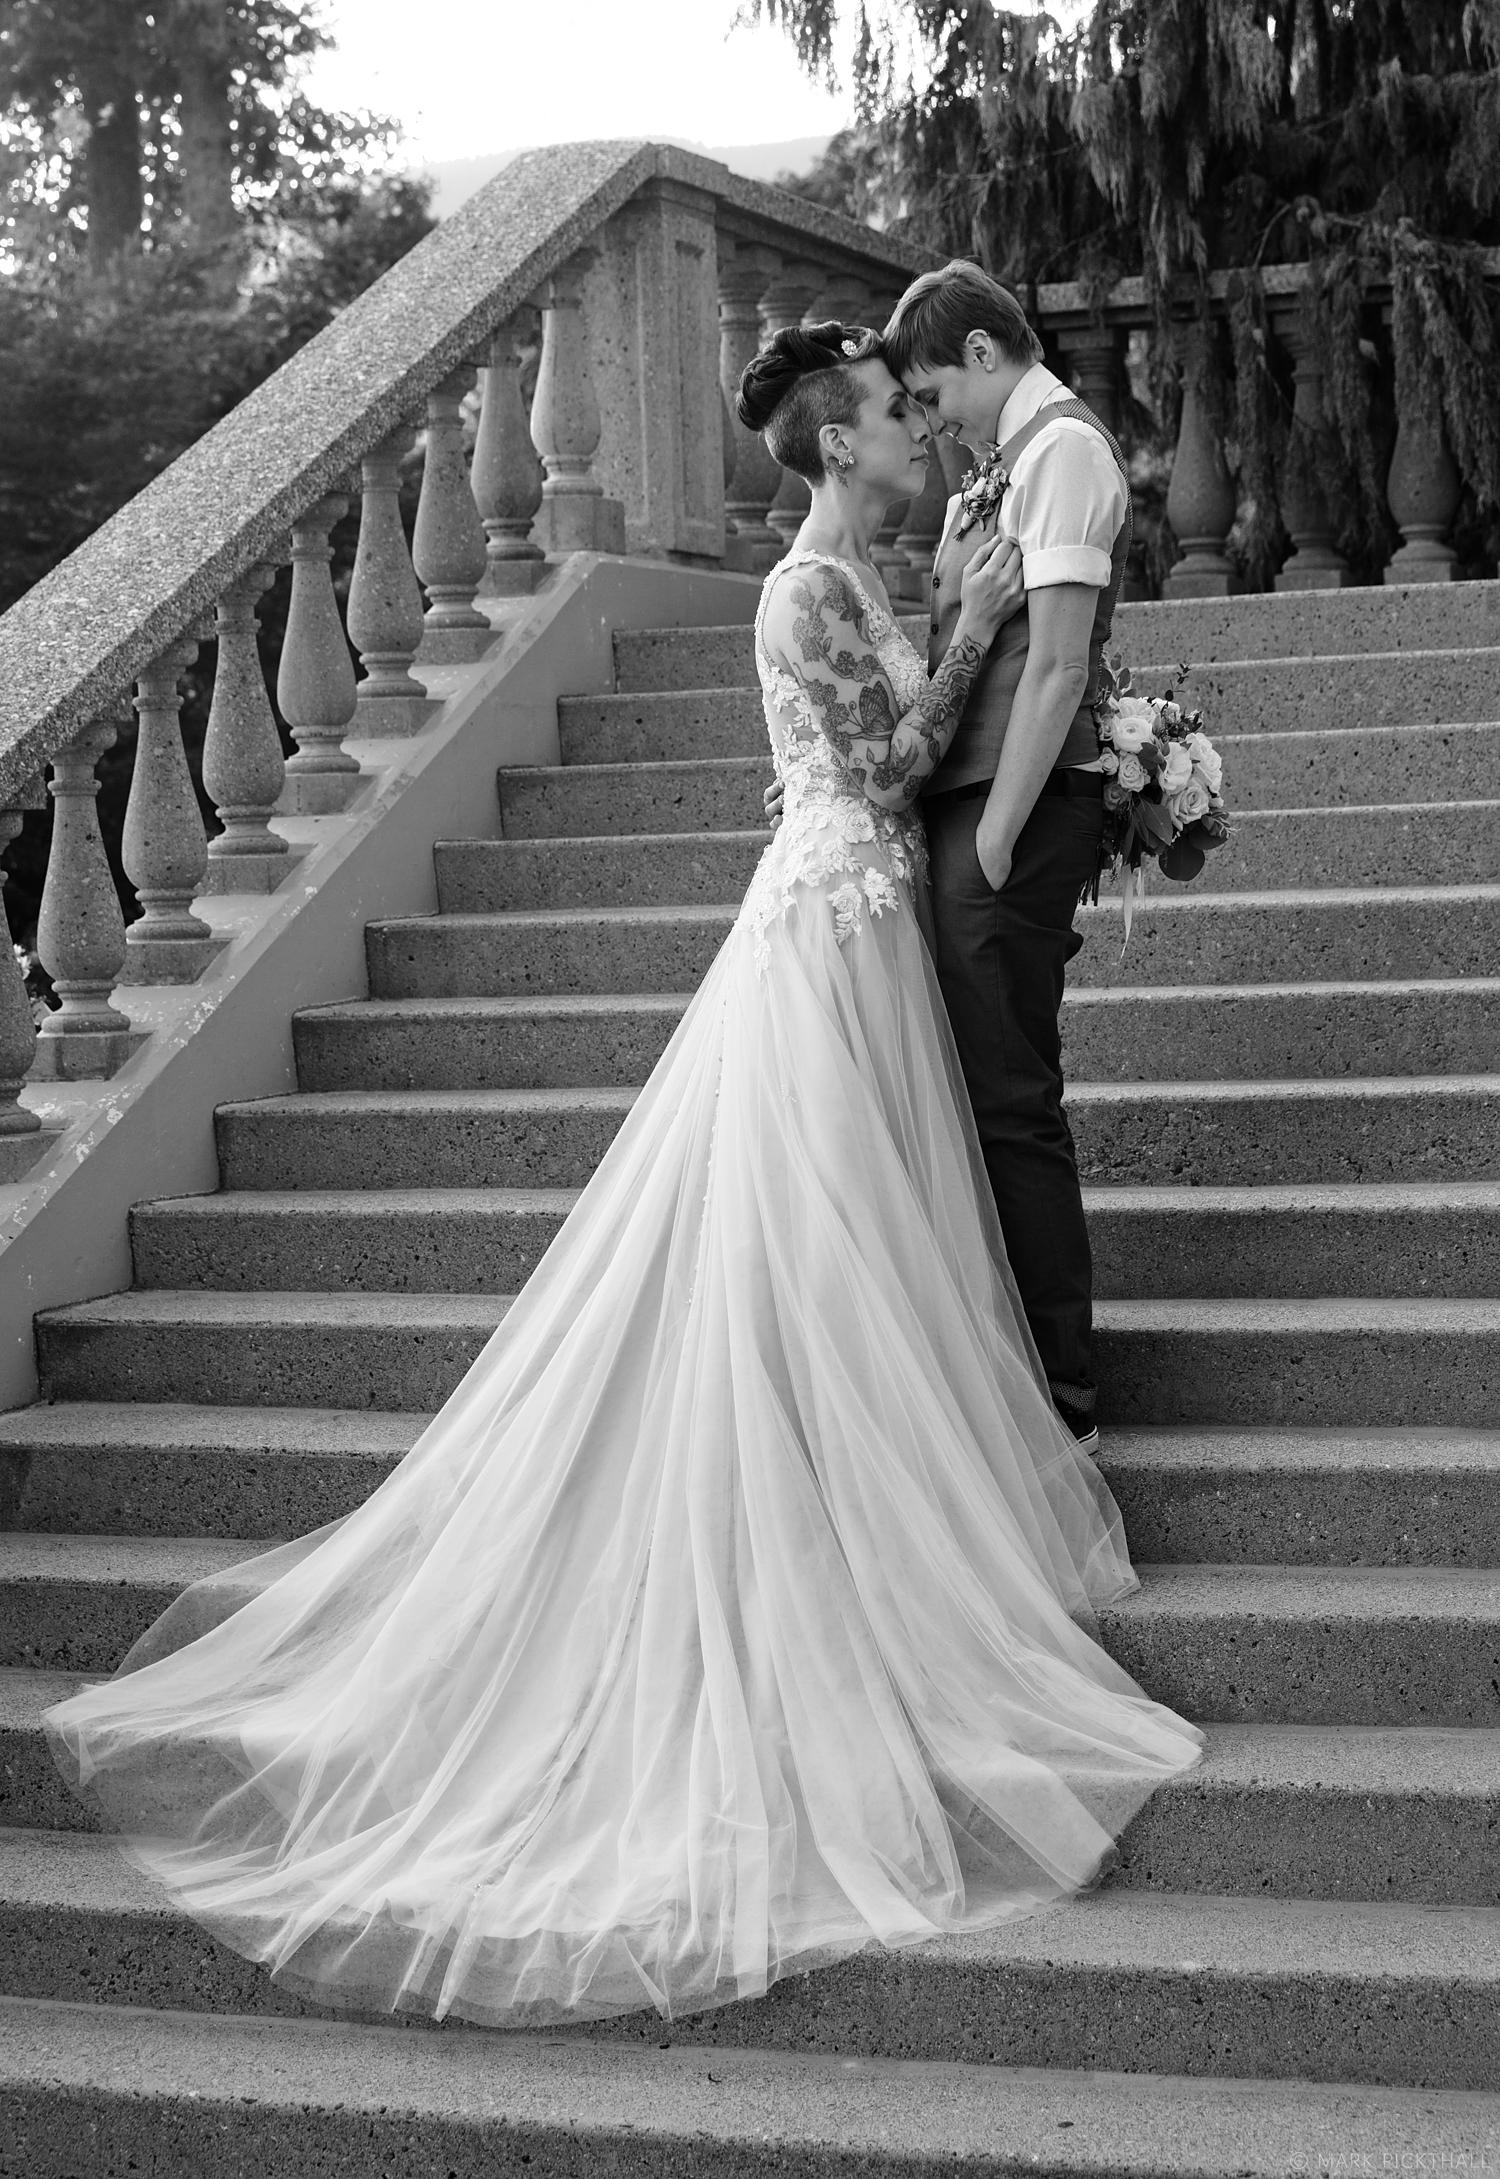 Monochrome Wedding photography, partners for life